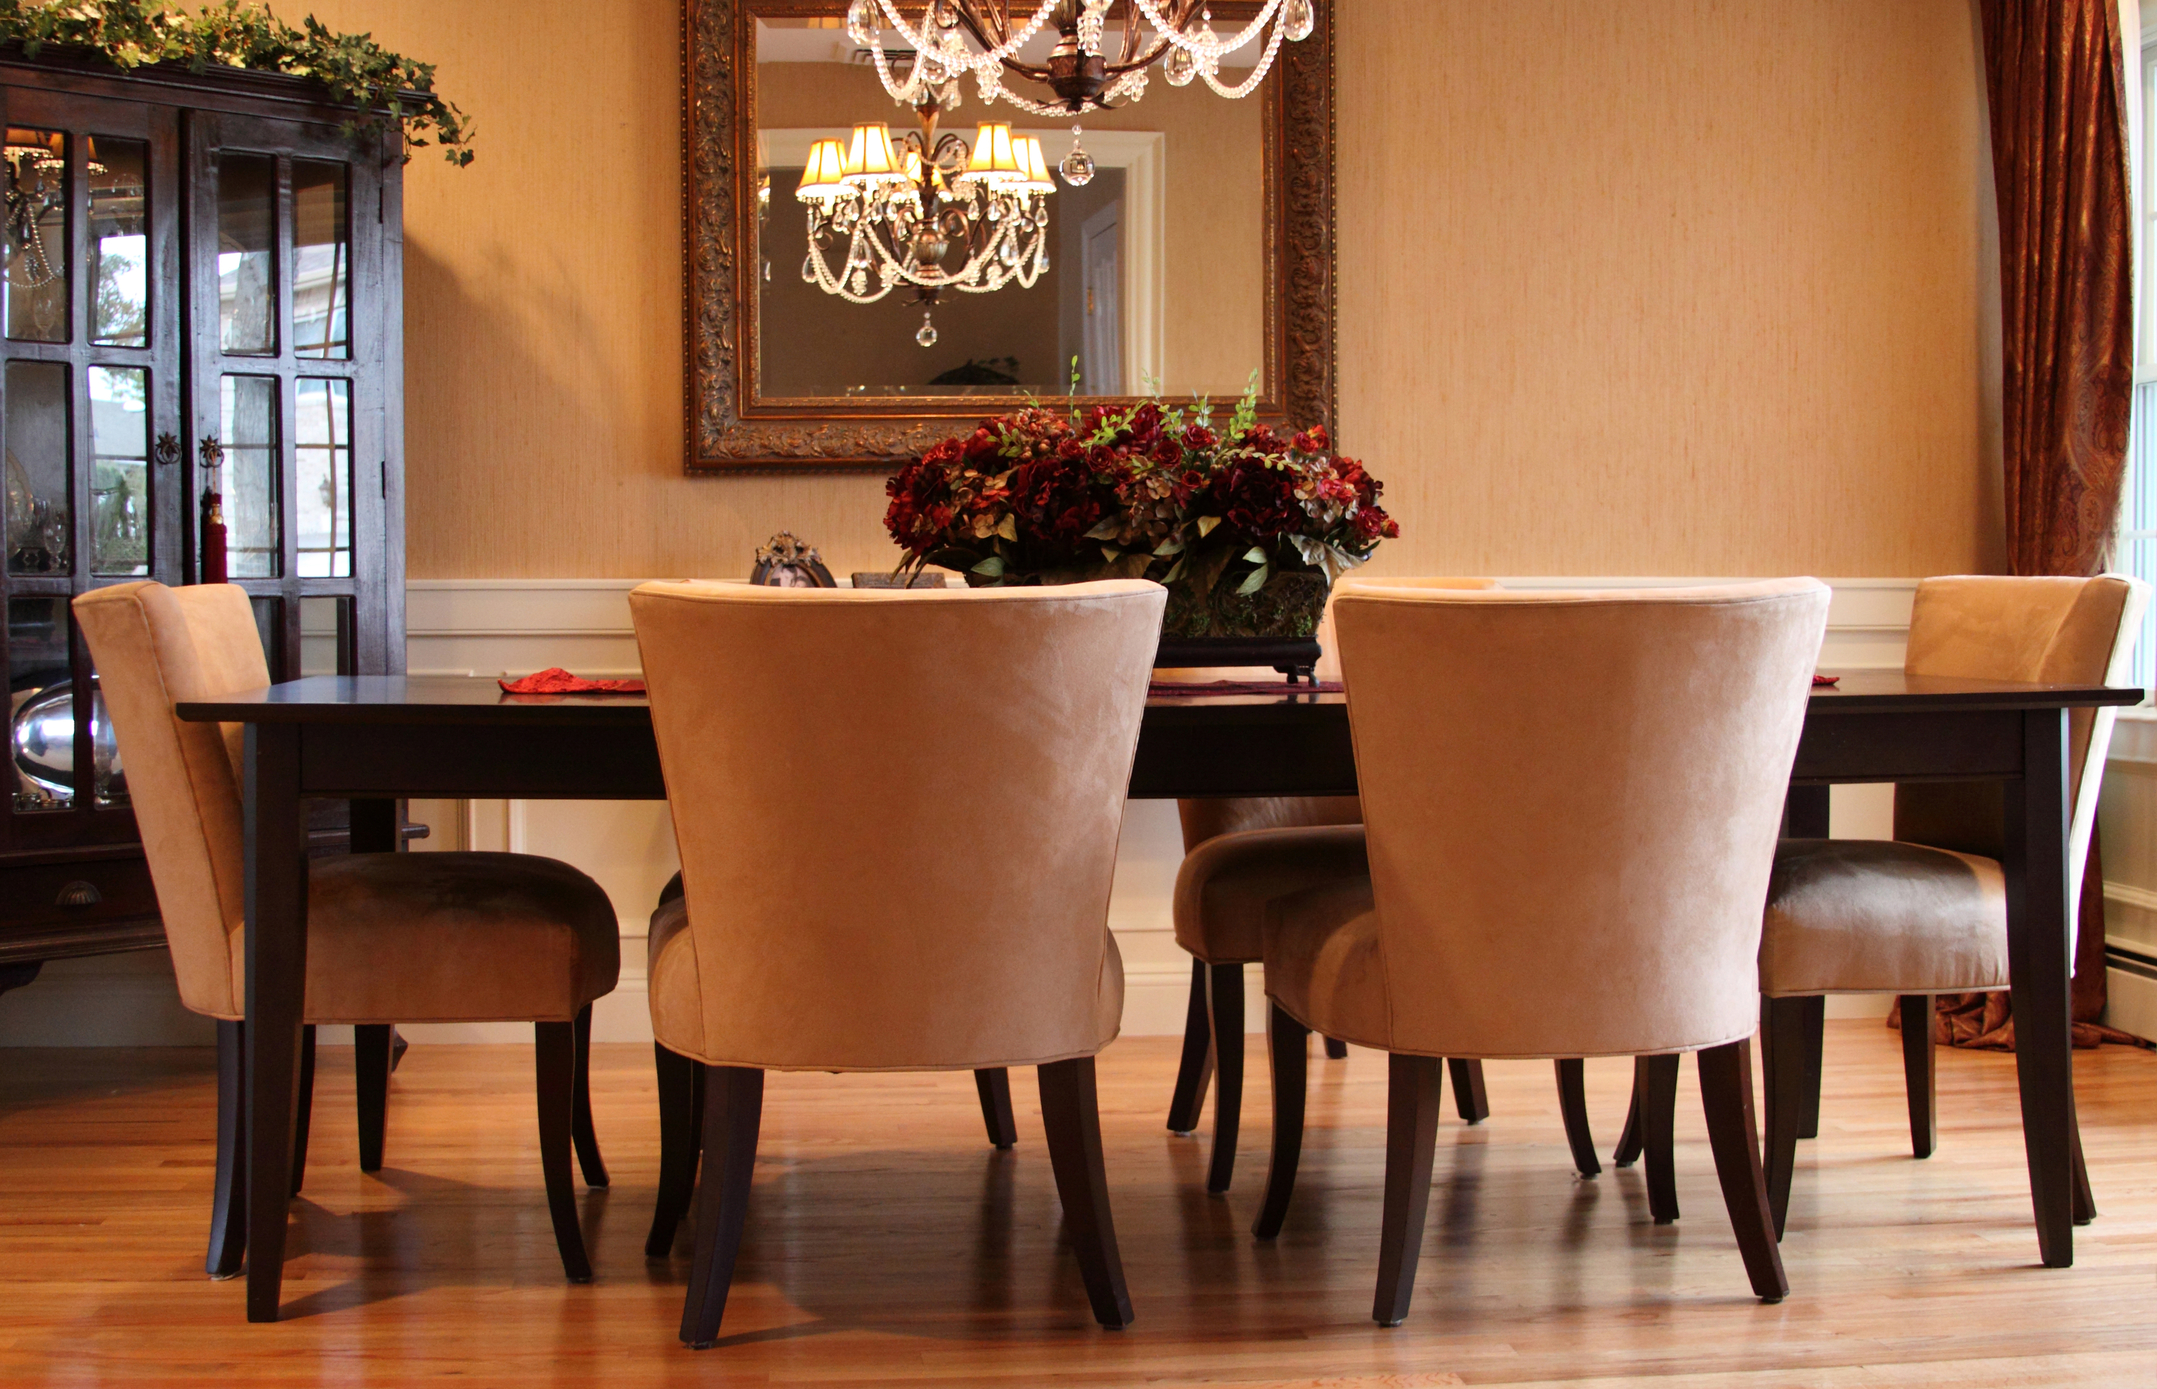 Excellent 6 Best Colors For Your Dining Room According To Feng Shui Home Interior And Landscaping Pimpapssignezvosmurscom